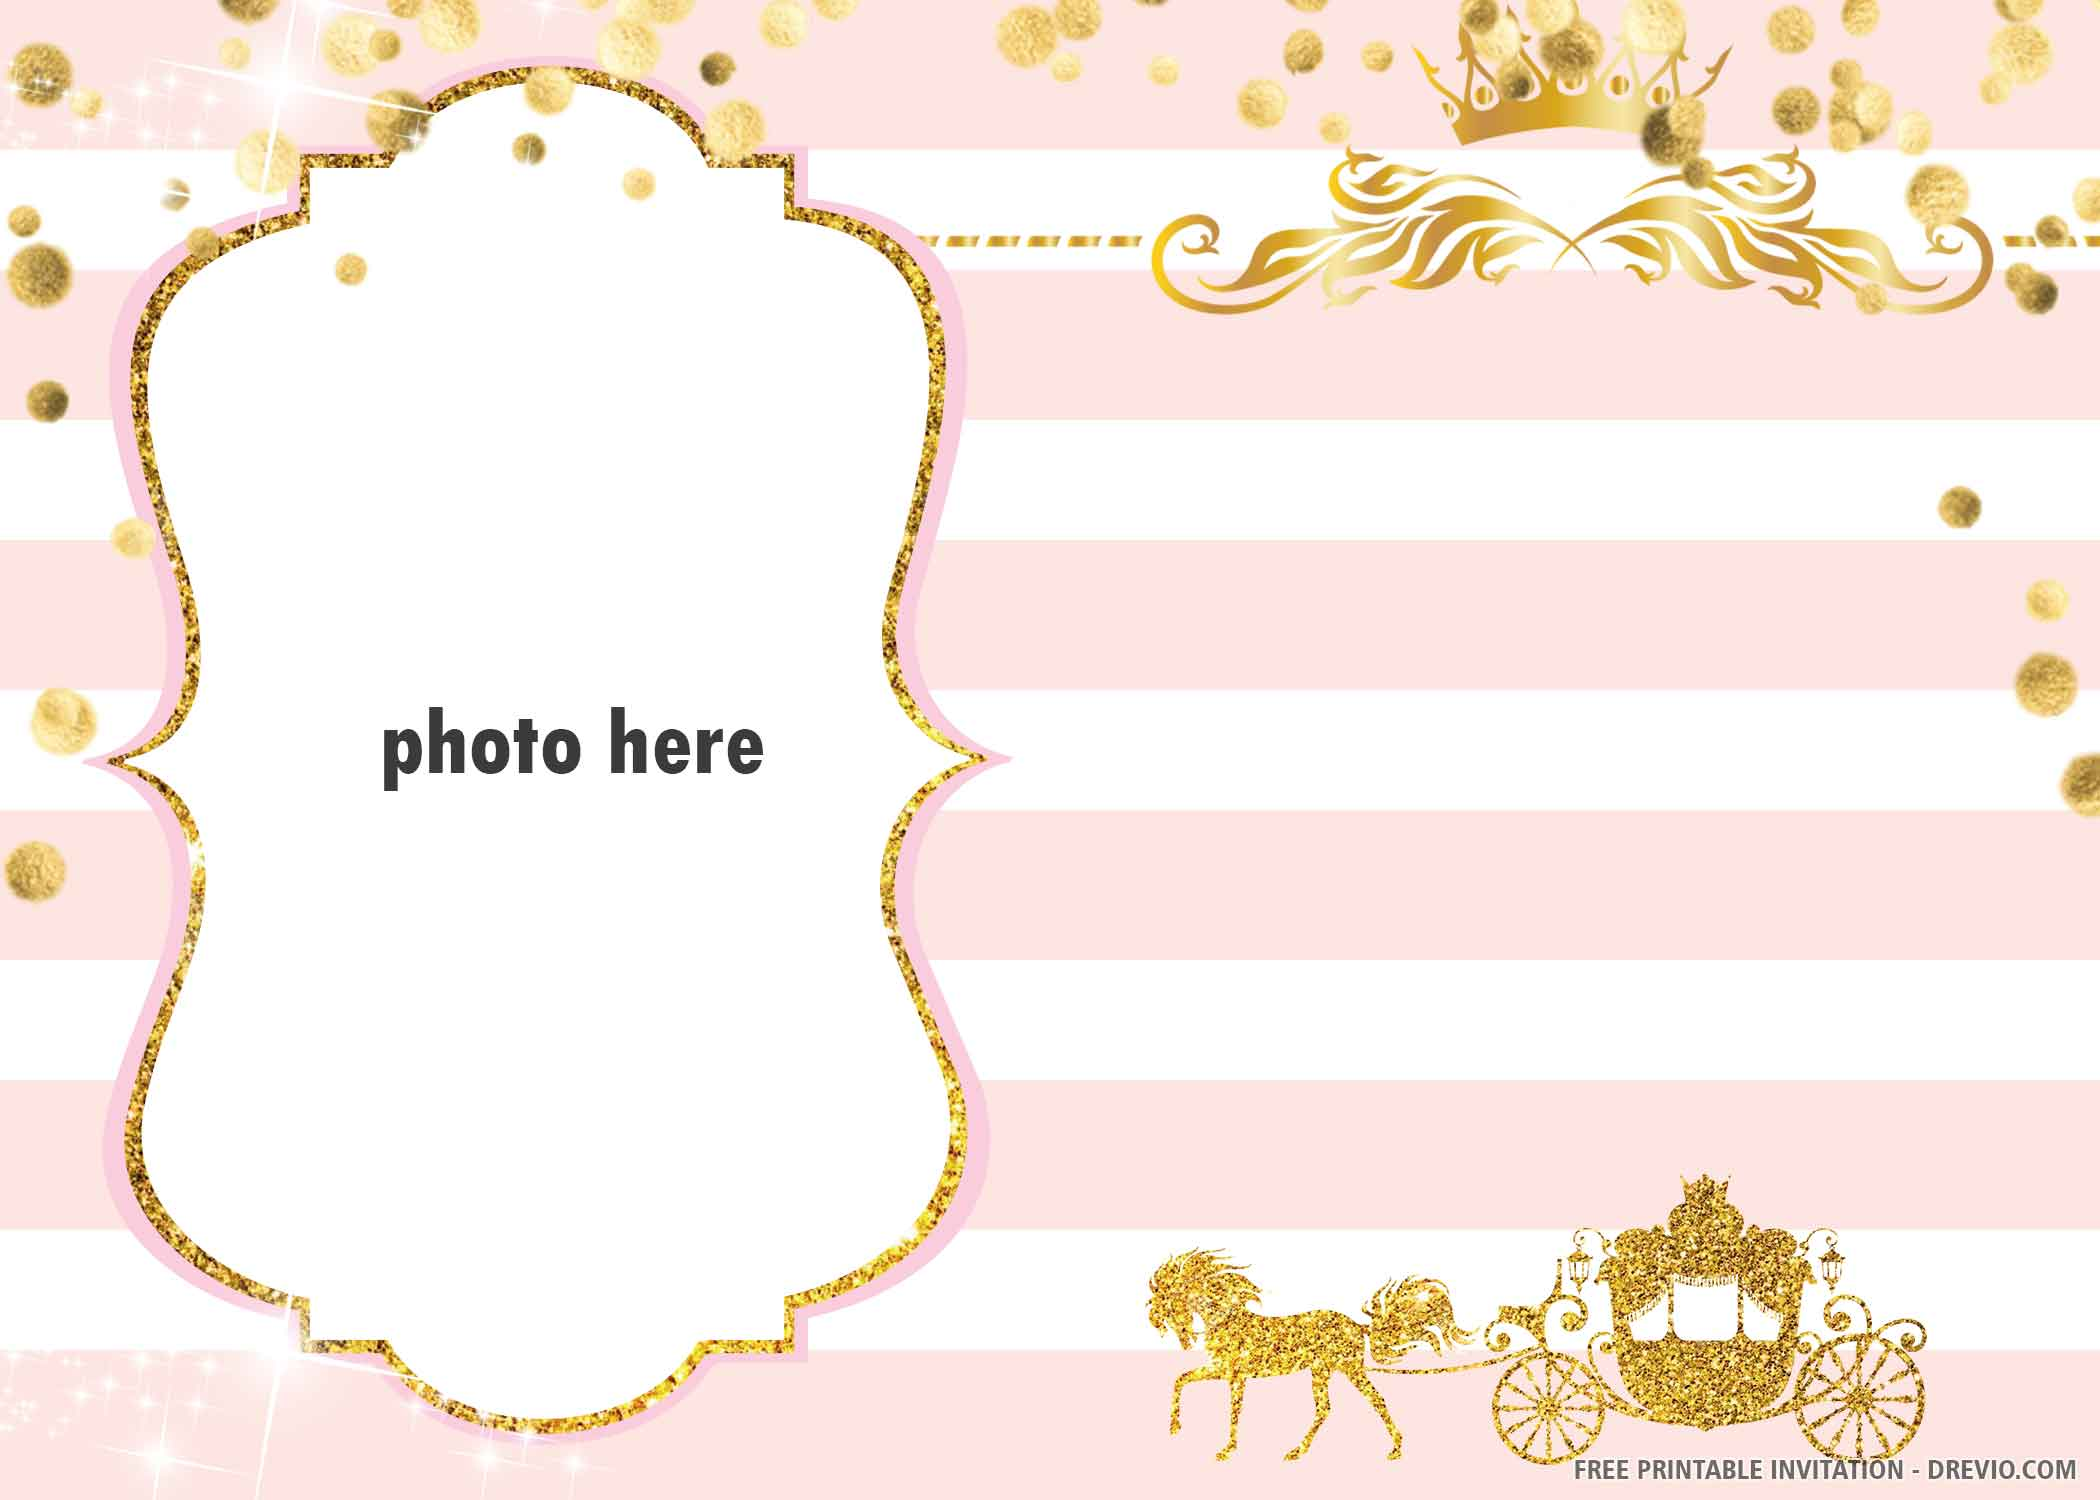 Free Printable Golden Carriage Invitation Template Download Hundreds Free Printable Birthday Invitation Templates